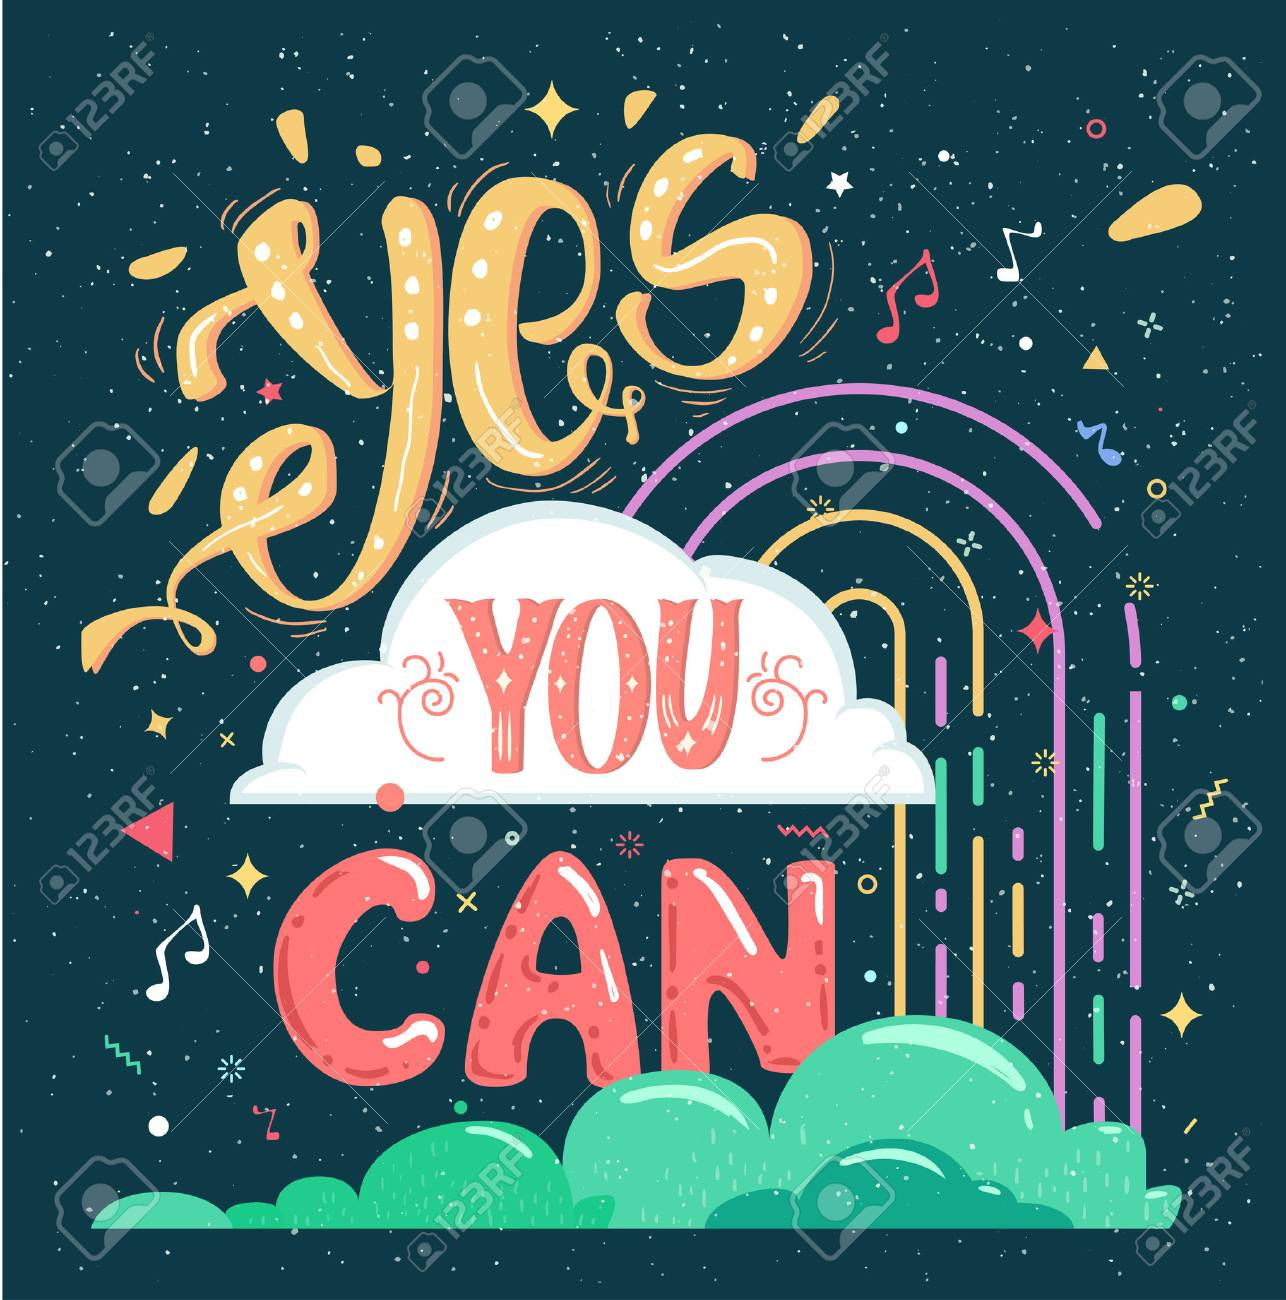 Inspirational Quotes Yes You Can Bright Cheerful Poster Lettering